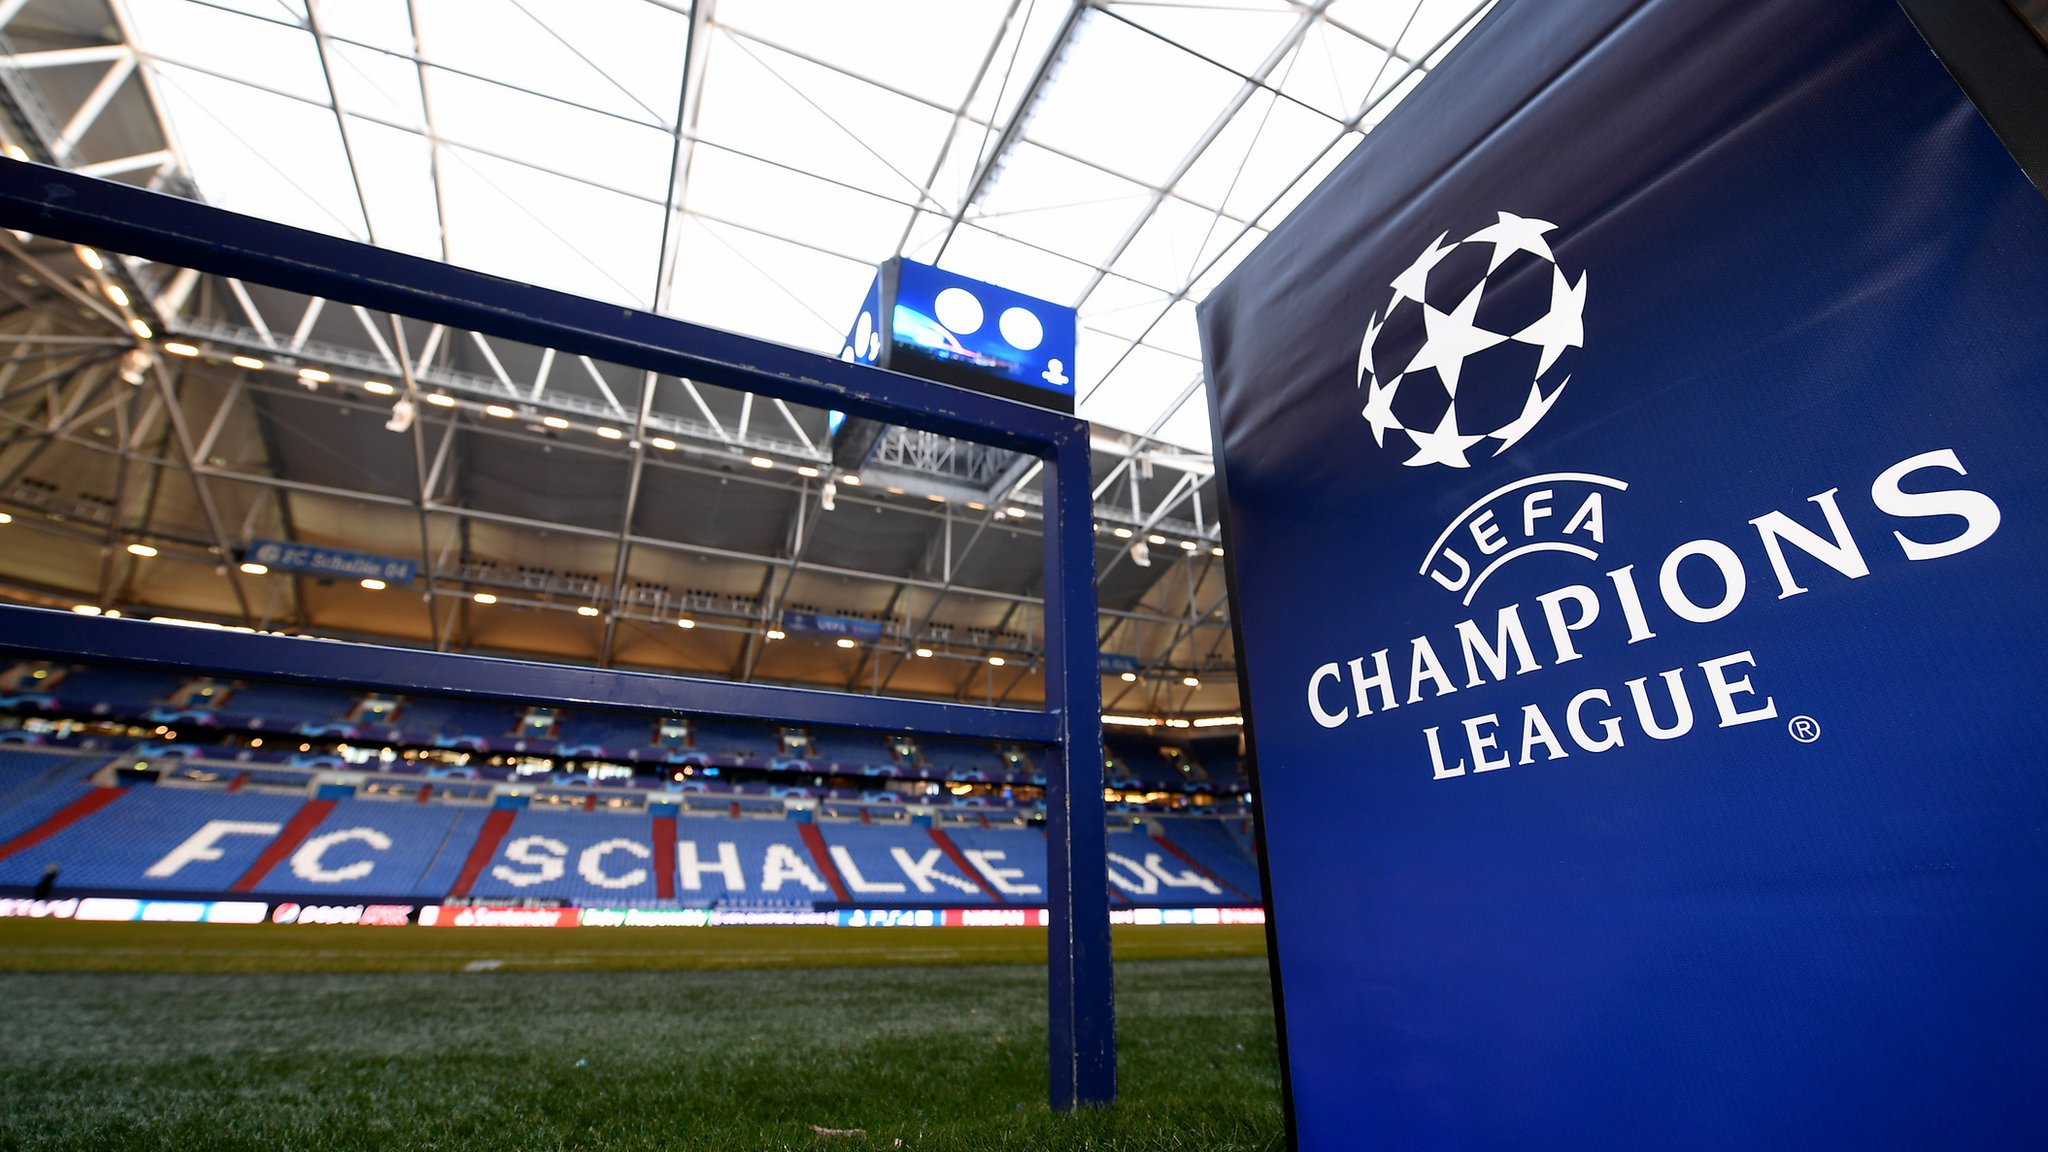 Man City fan in critical condition after being punched in Schalke stadium